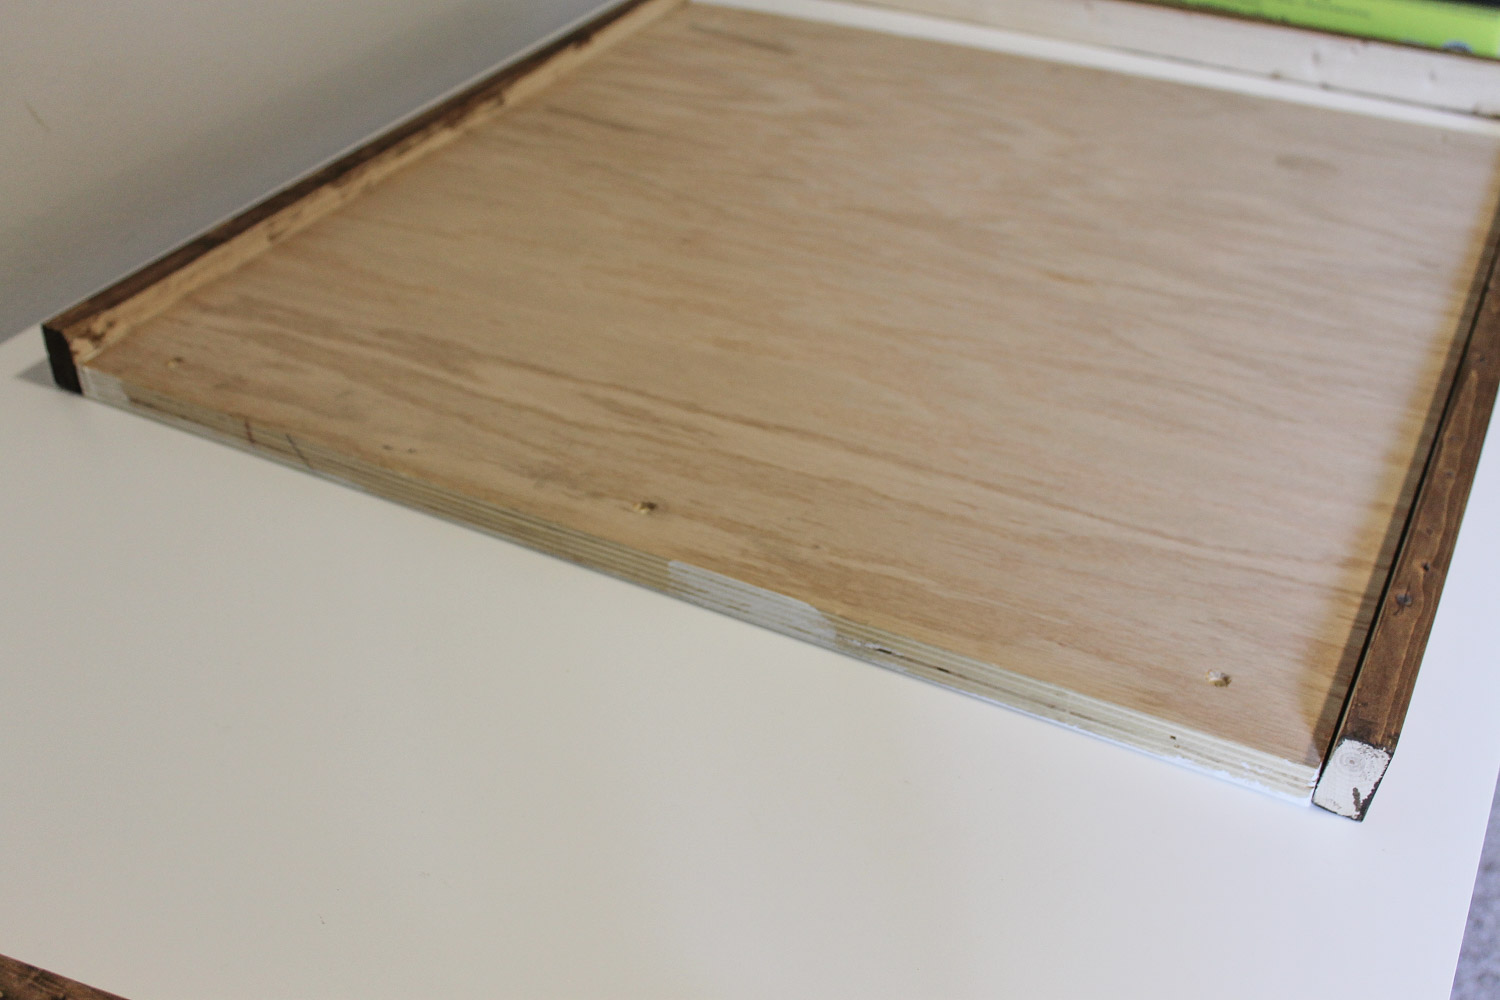 Attaching wood sign frame pieces to sign backing